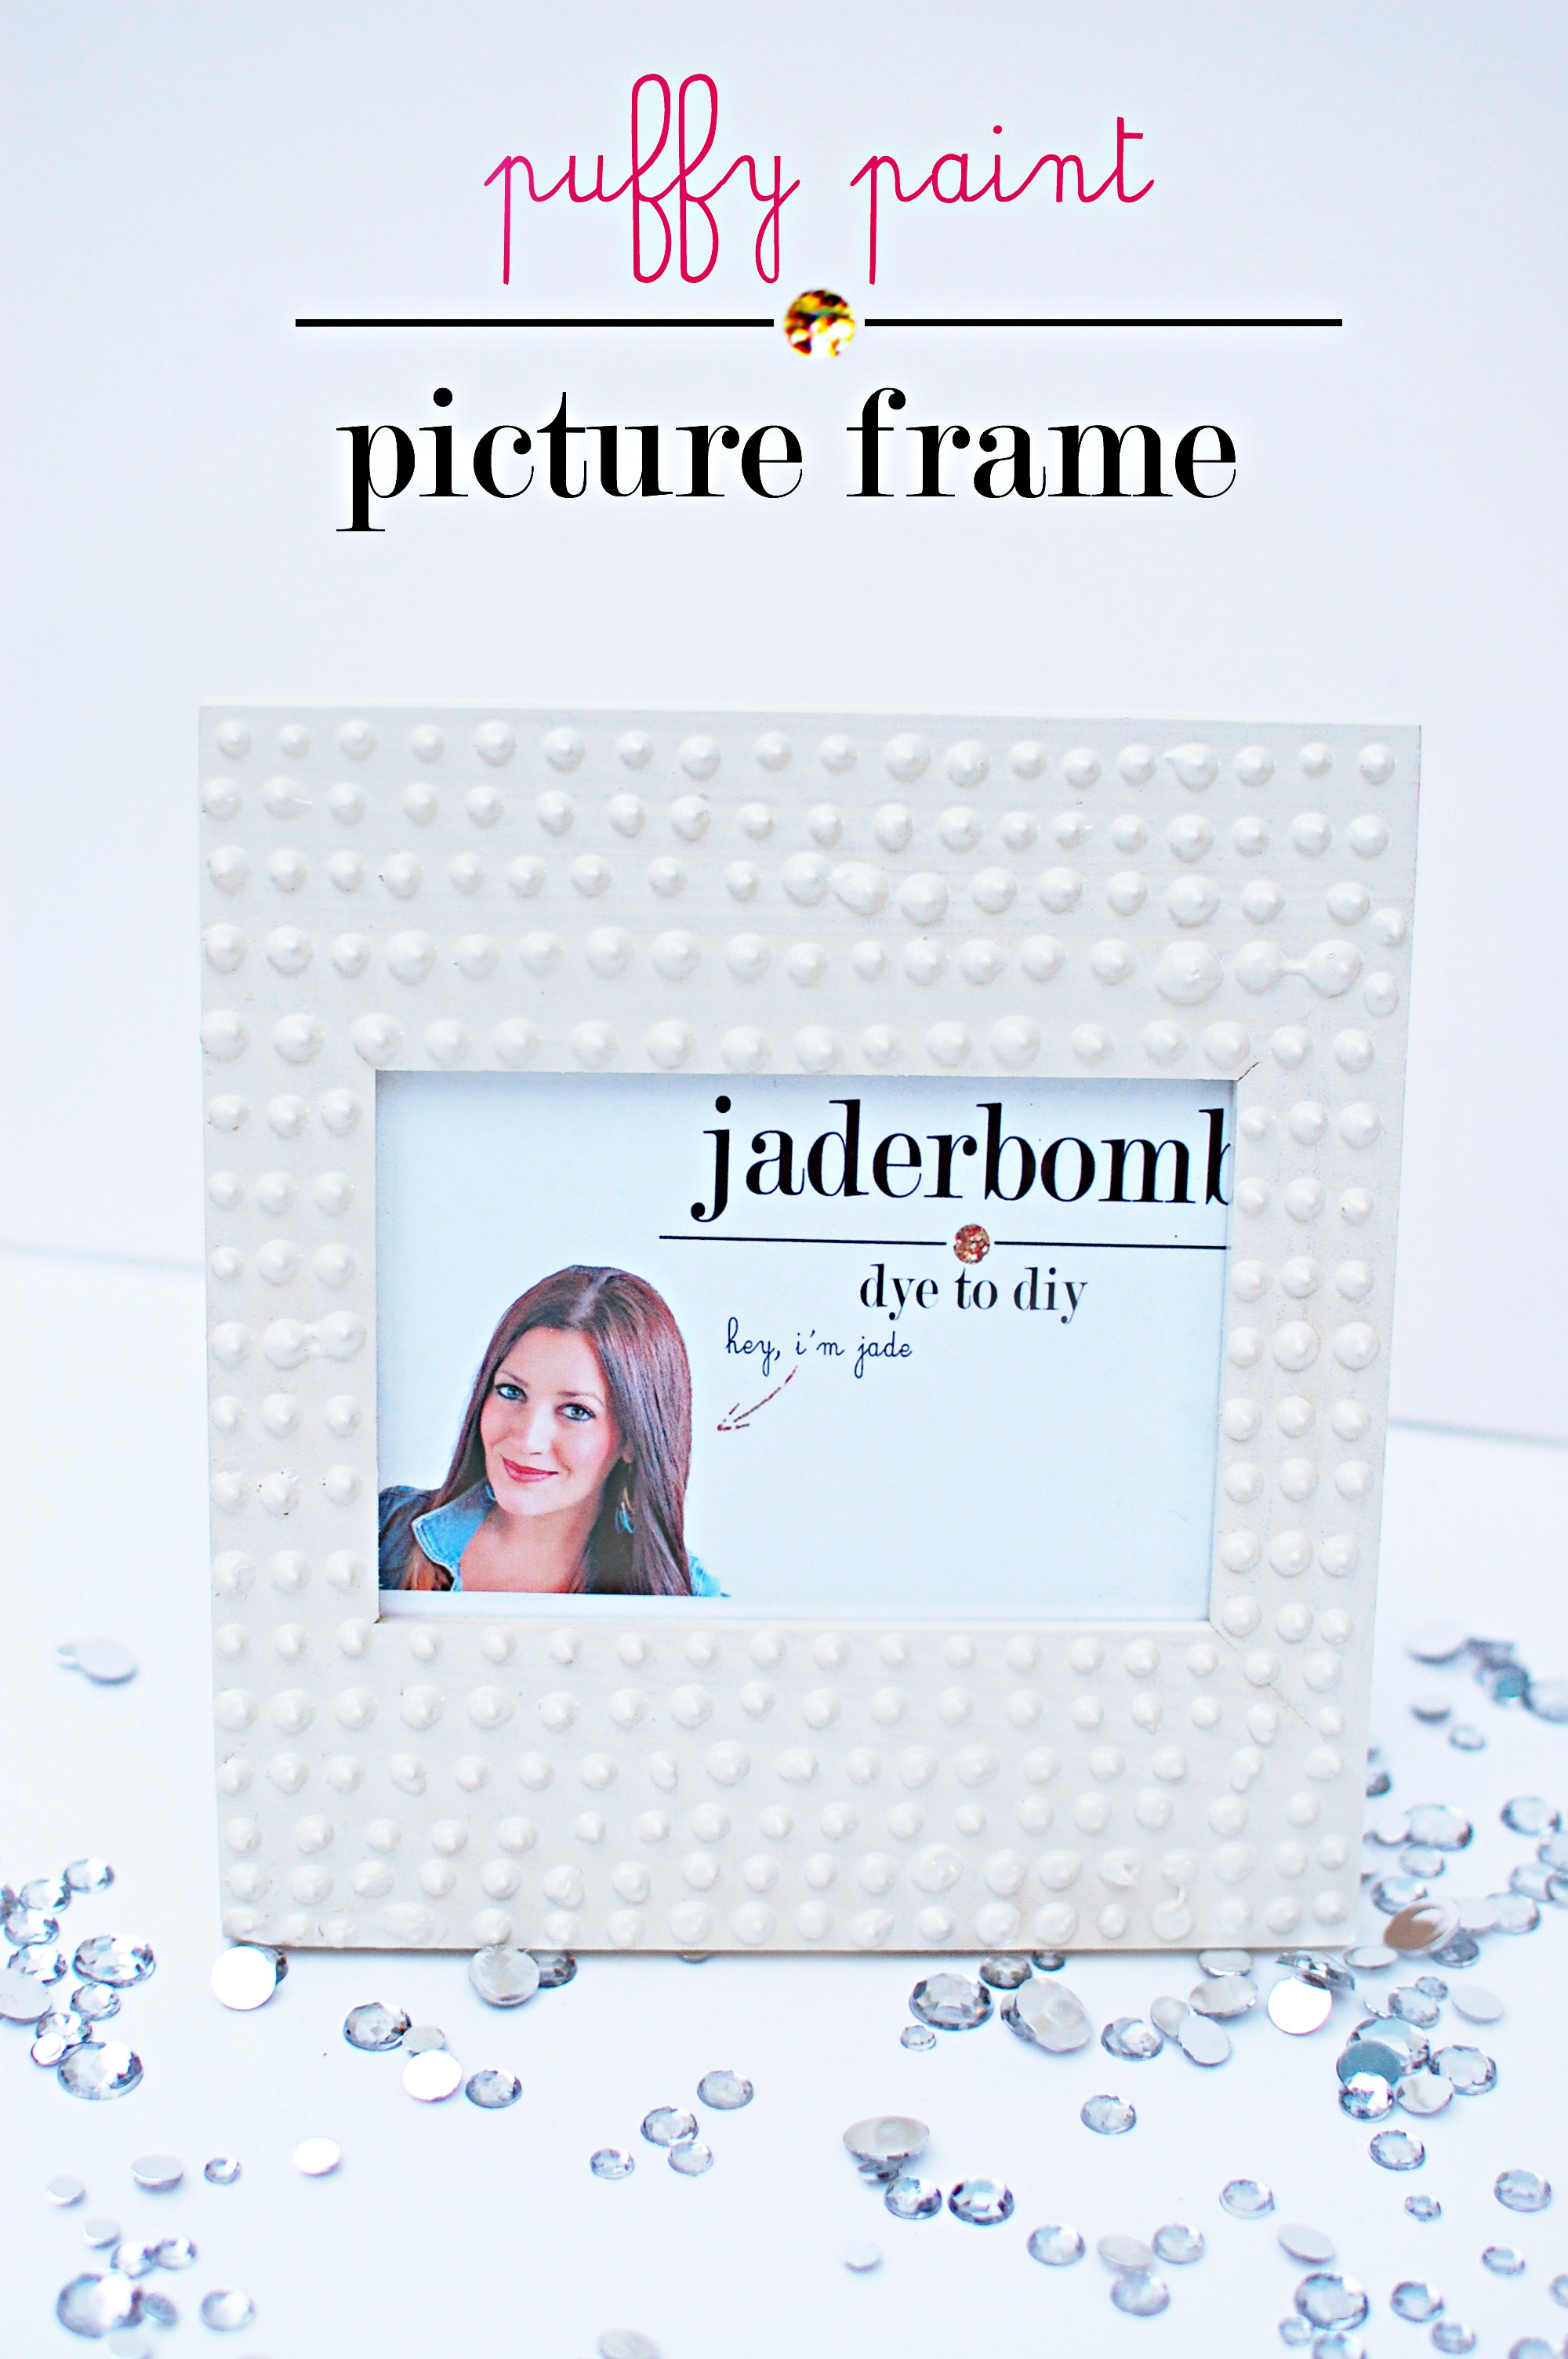 Puffy_Paint_Picture_Frame_Jaderbomb